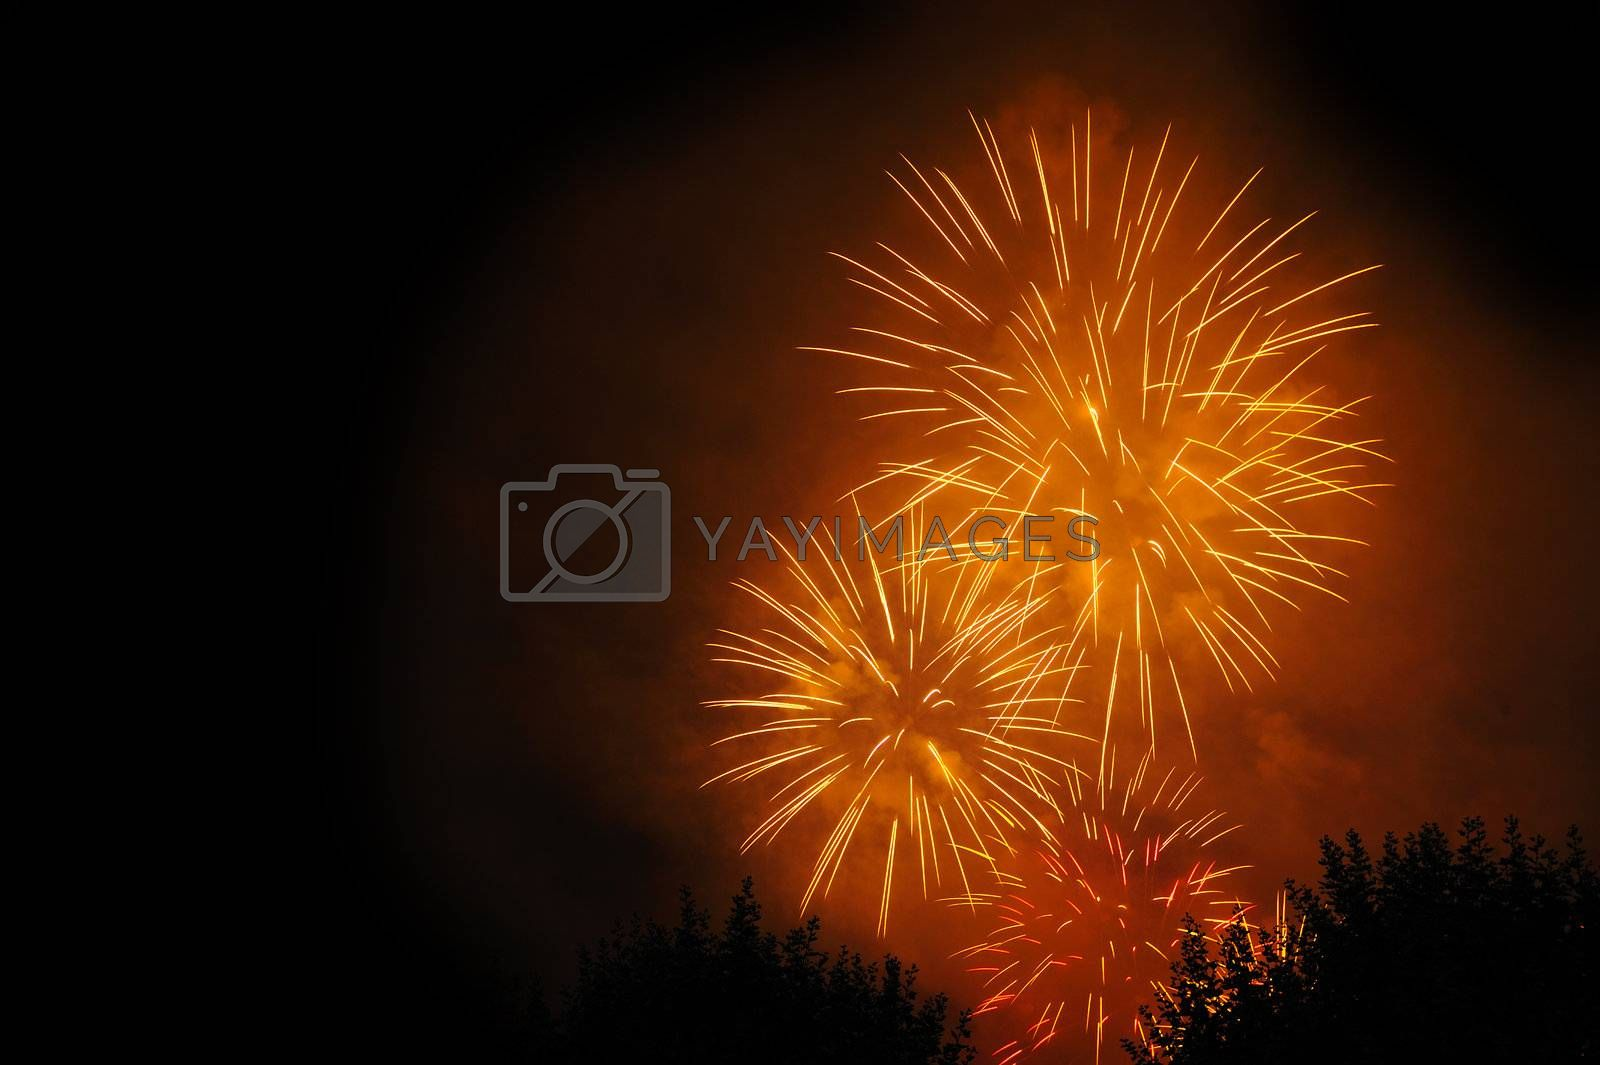 Firework bursts in the night sky, over trees (just visible). Space for text in the dark of the night sky.